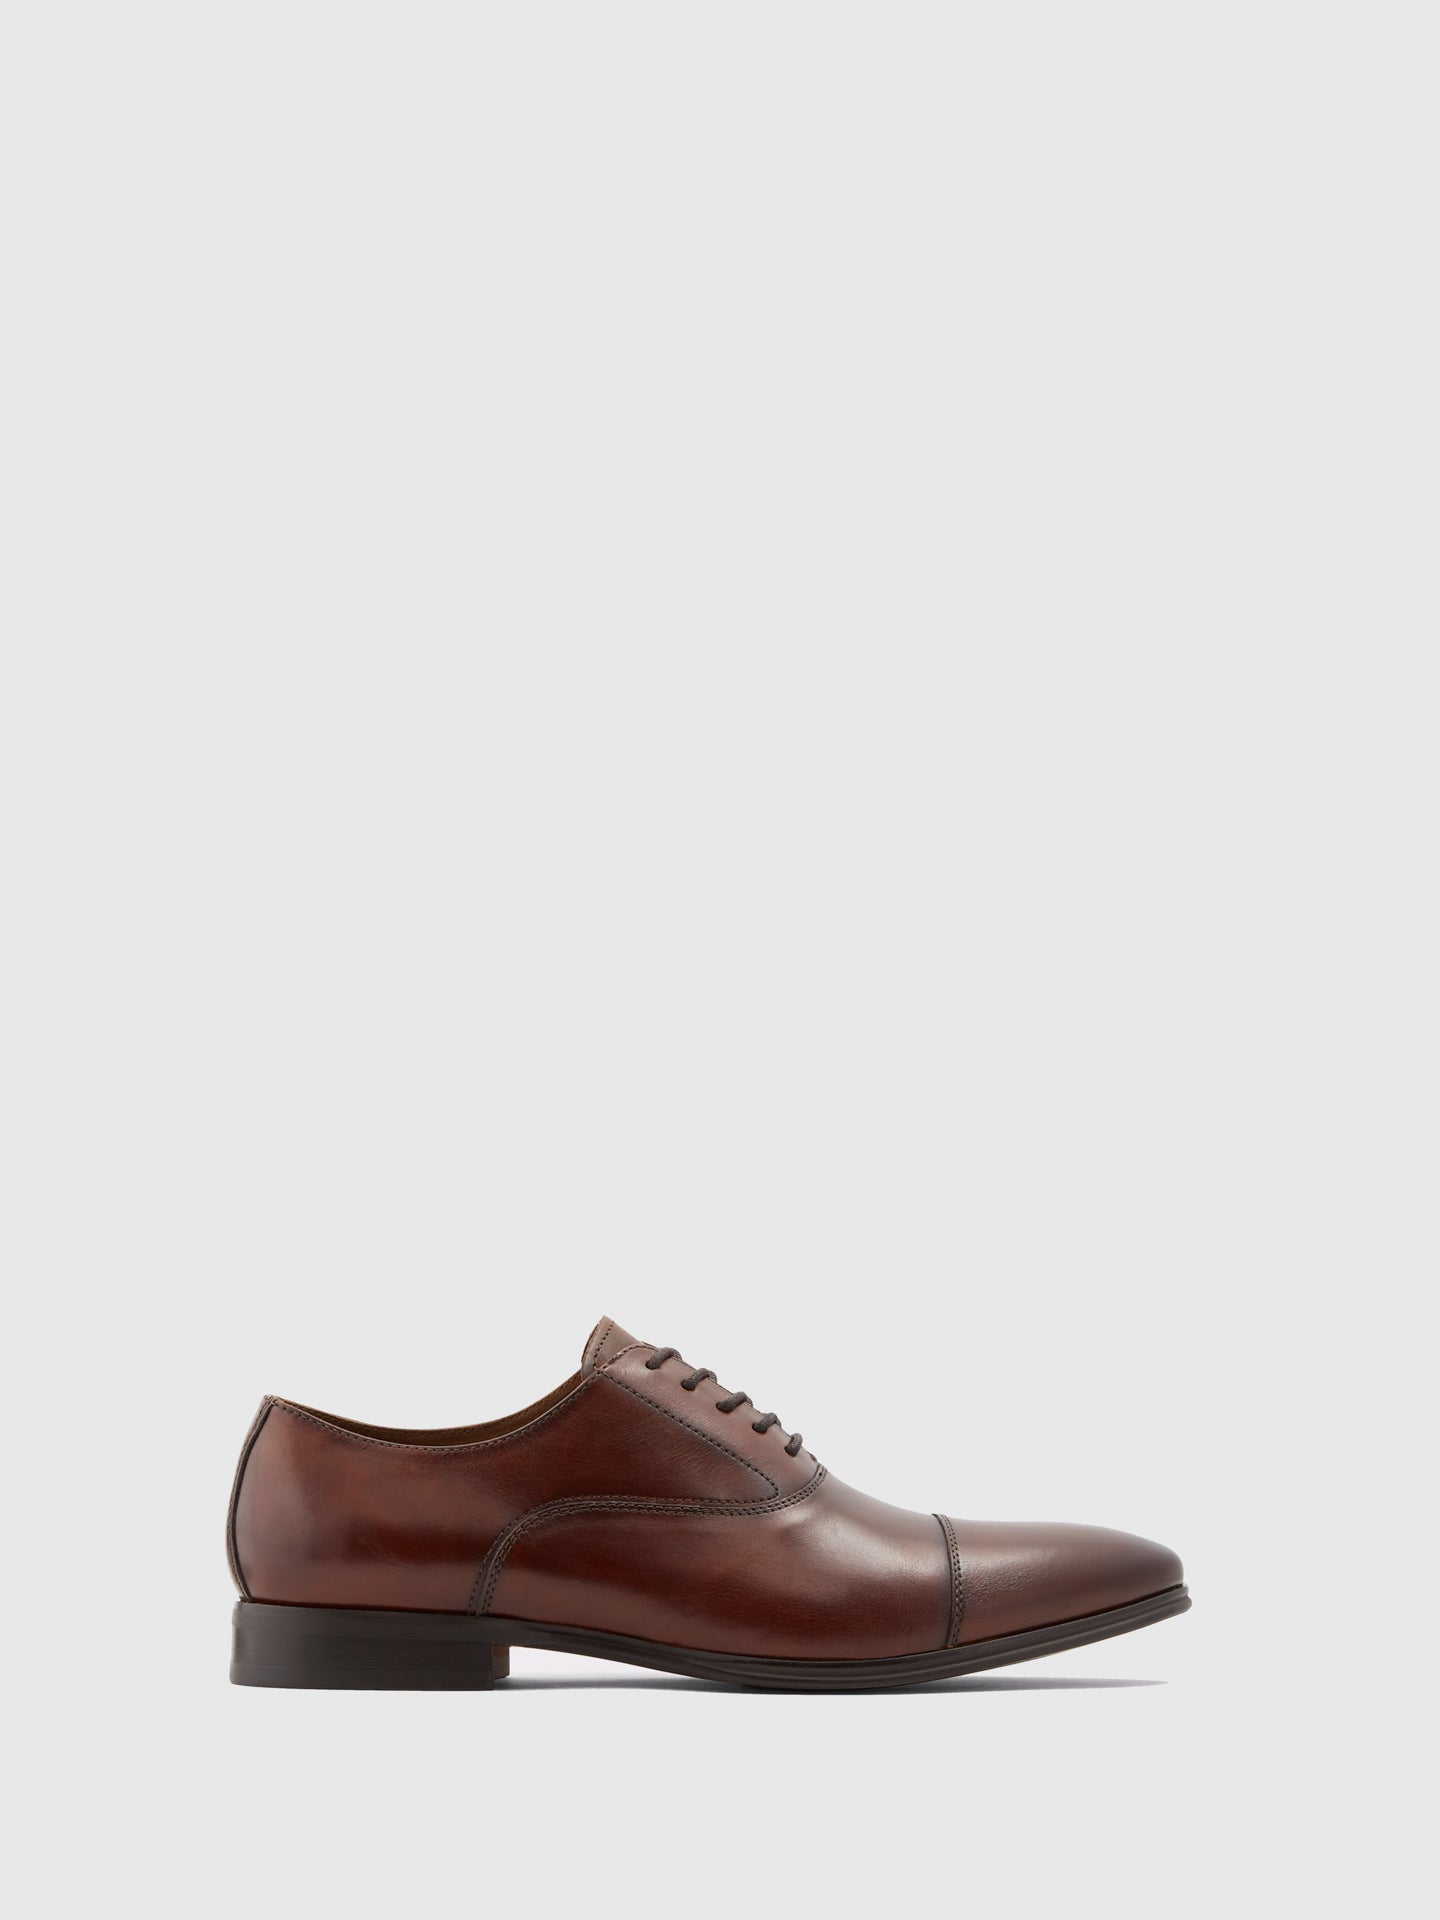 Aldo Chocolate Lace-up Shoes